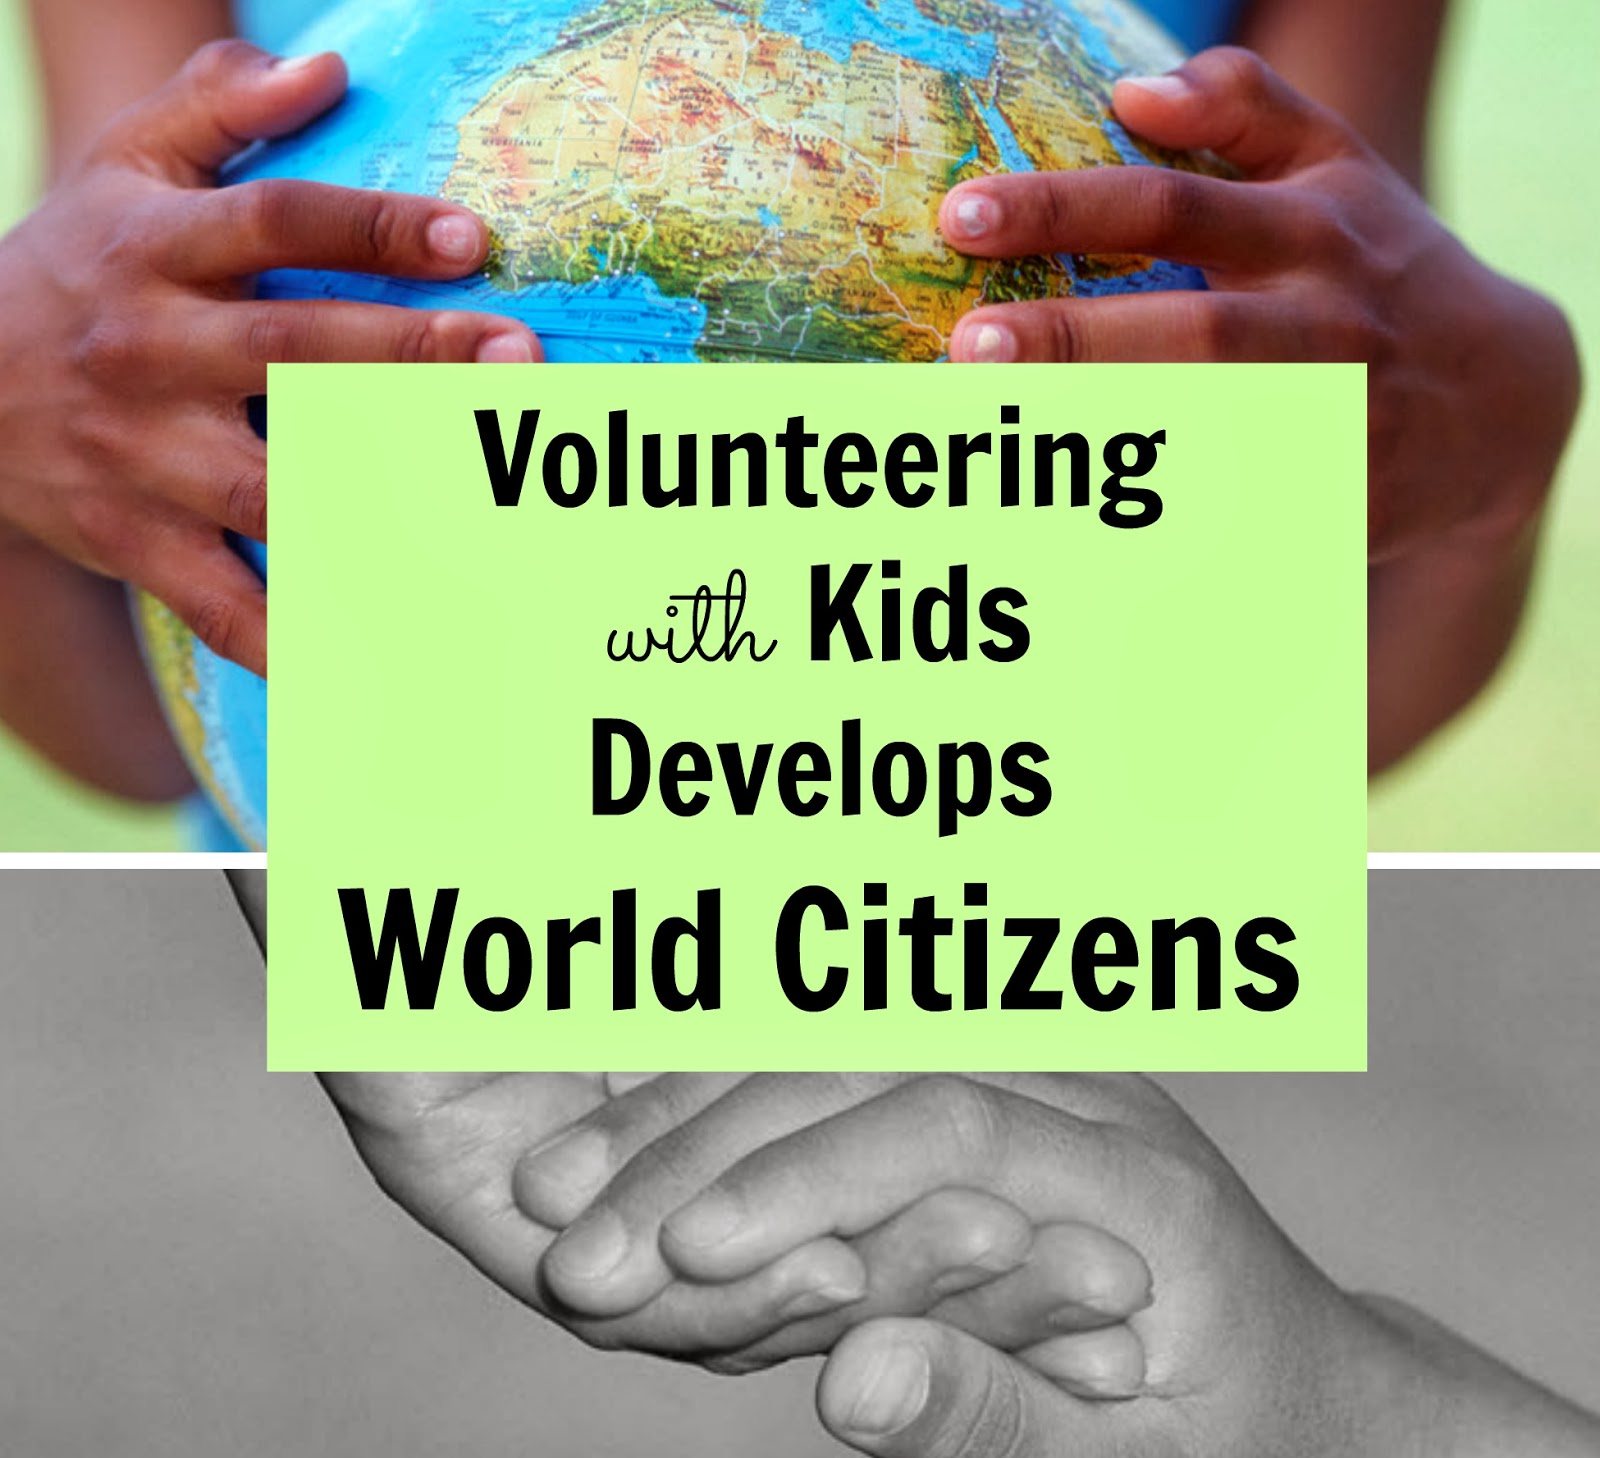 Volunteering with Kids Develops World Citizens | Multicultural Kid Blogs